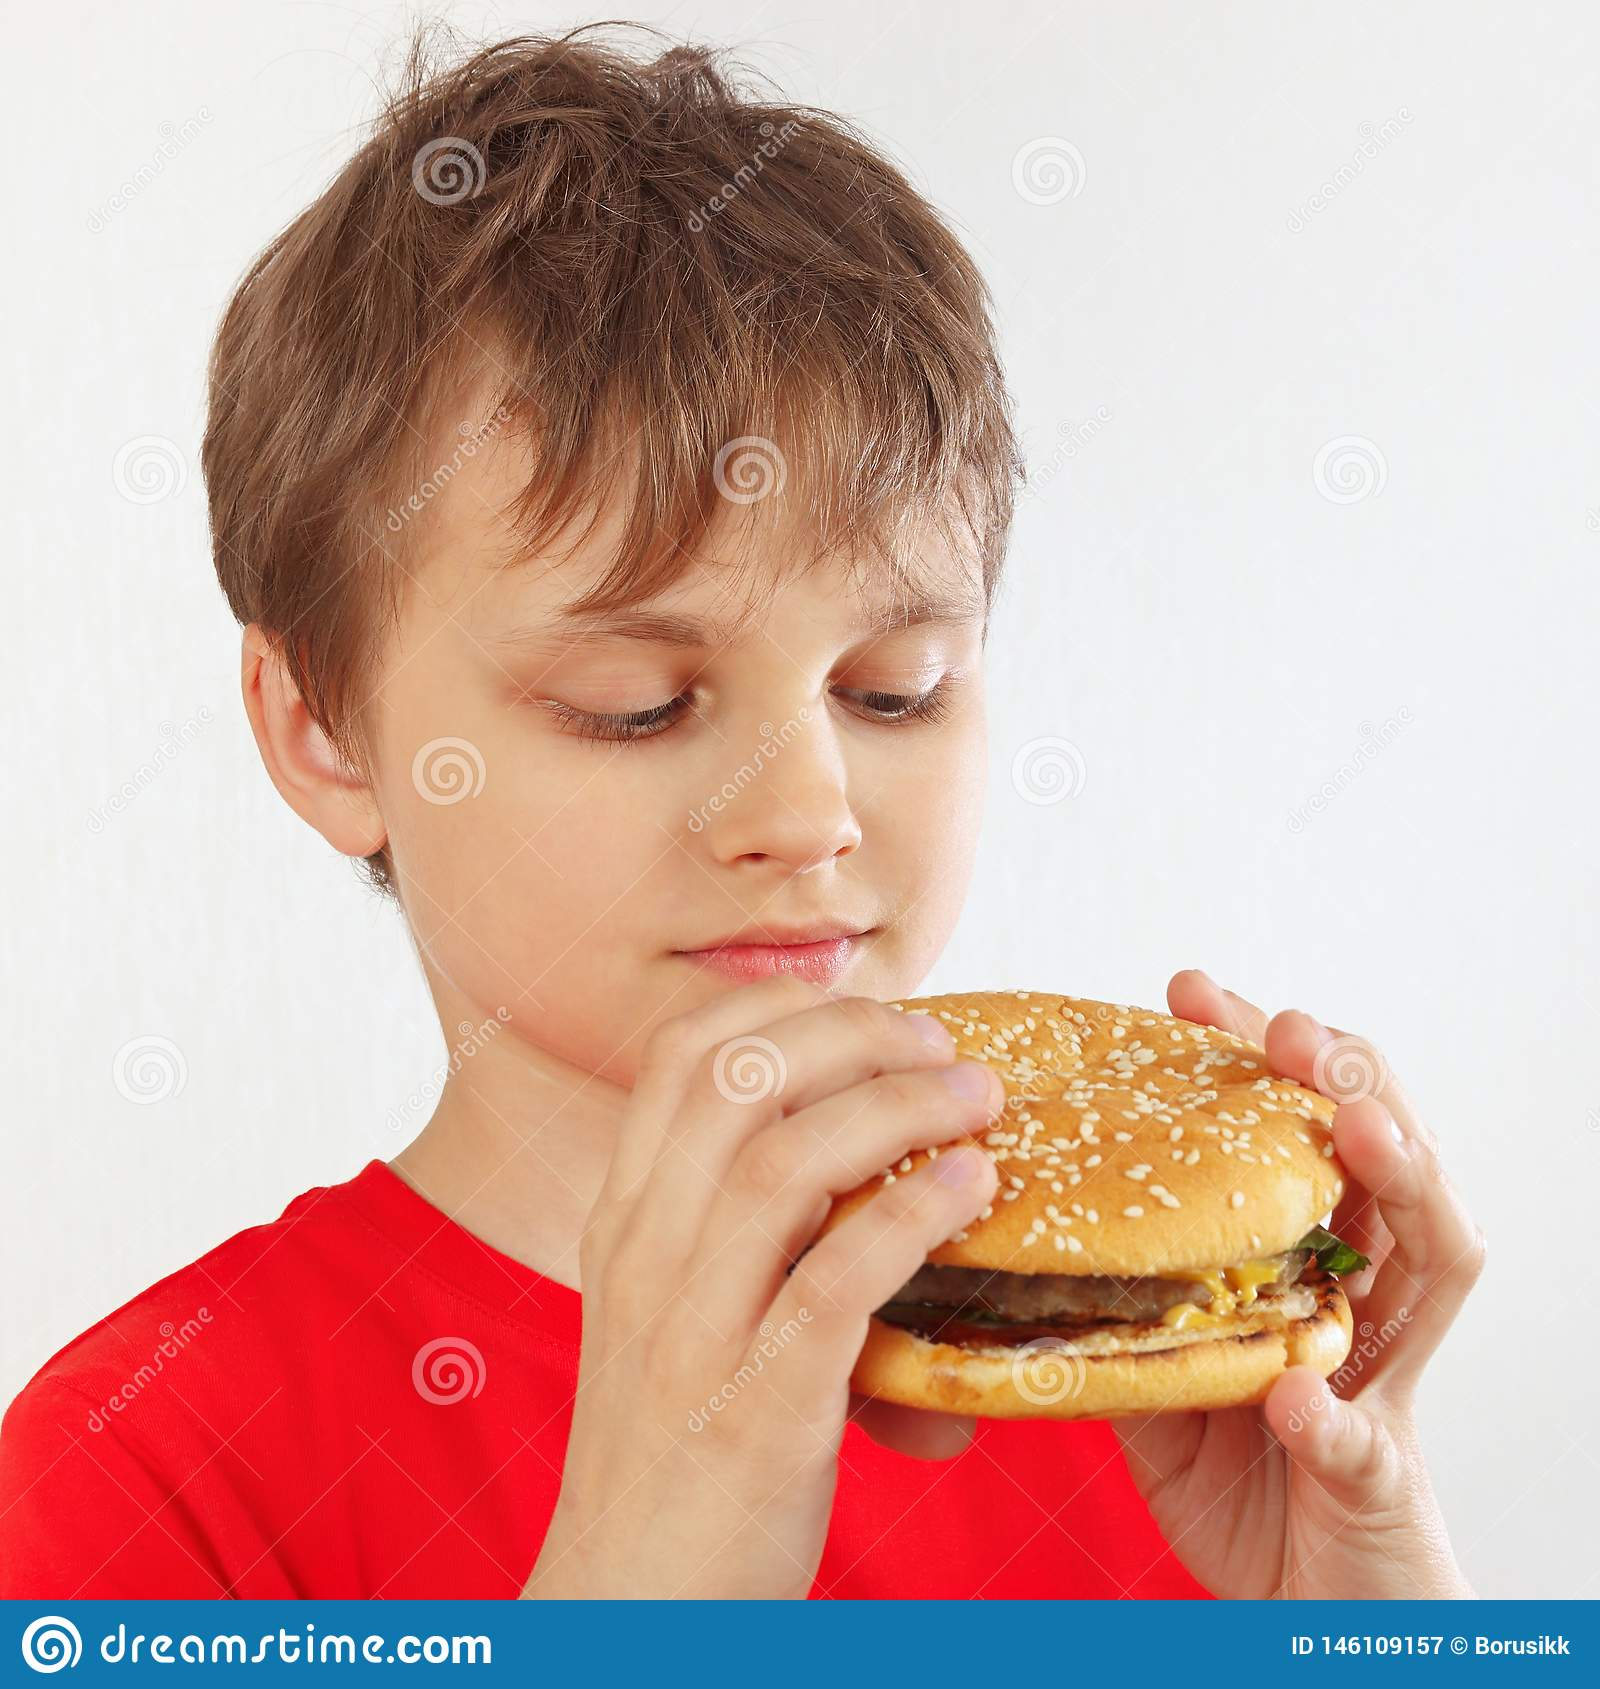 Little cut boy in a red shirt with a tasty hamburger on white background